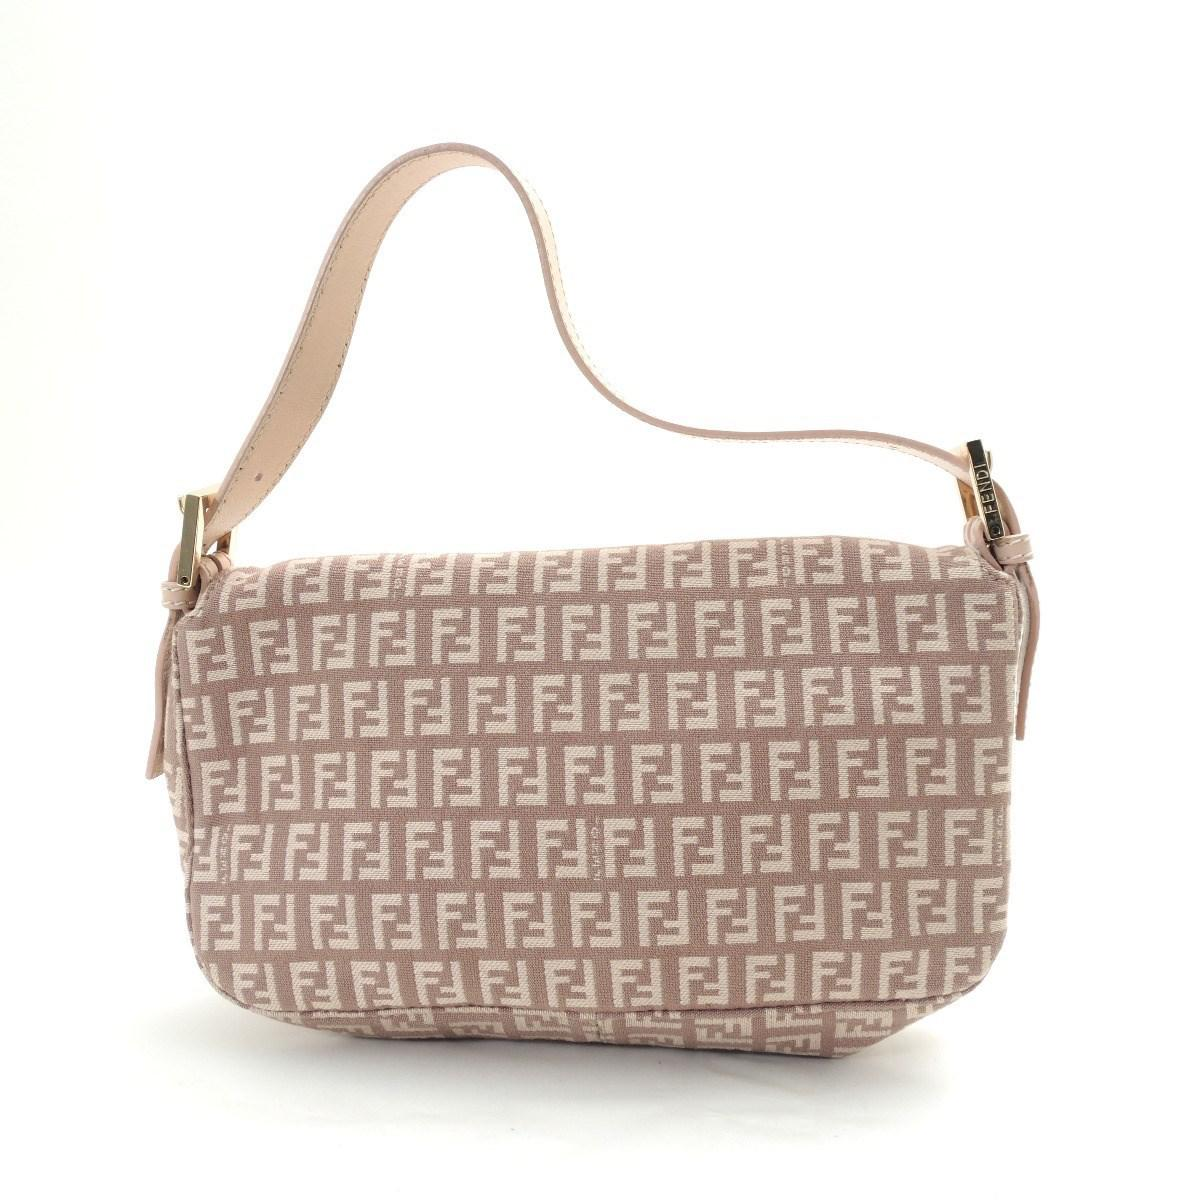 897eef9a2e7b2 ... coupon code for lyst fendi canvas one shoulder bag zucchini shoulder  bag in natural 8b31b 6cd2b ...